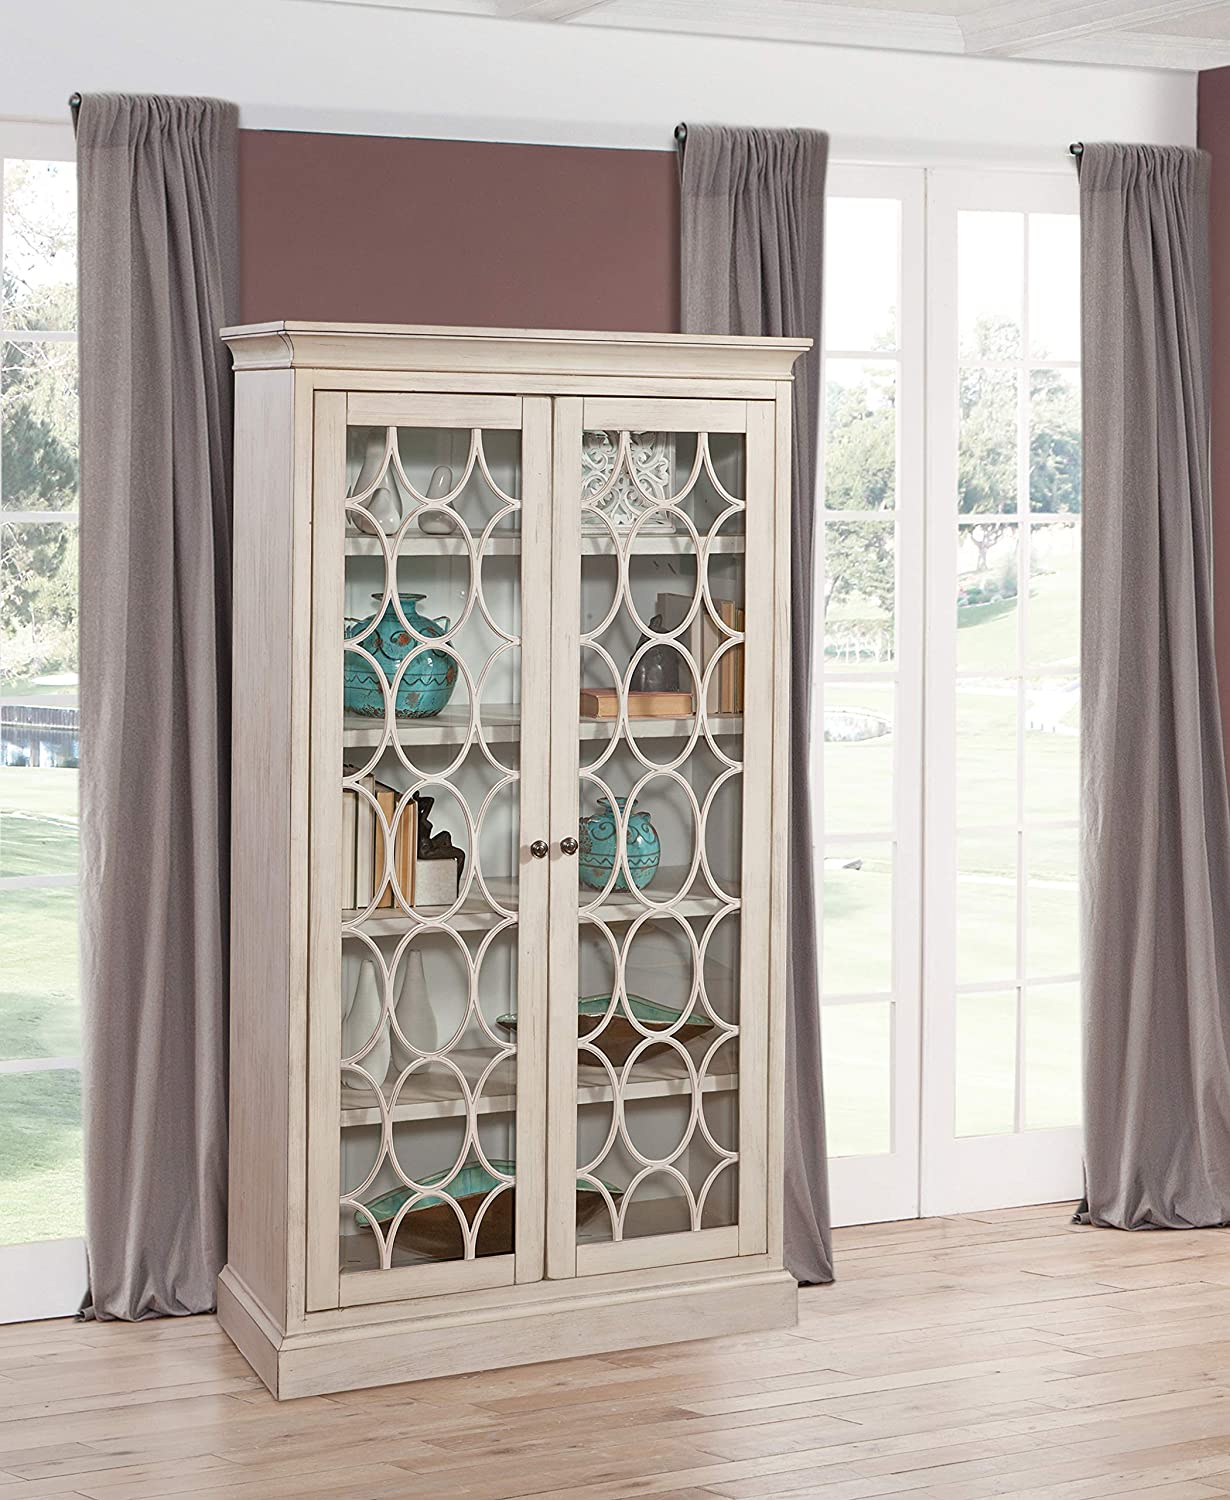 Top 5 Best Bookcase With Doors 2020 (Reviews)